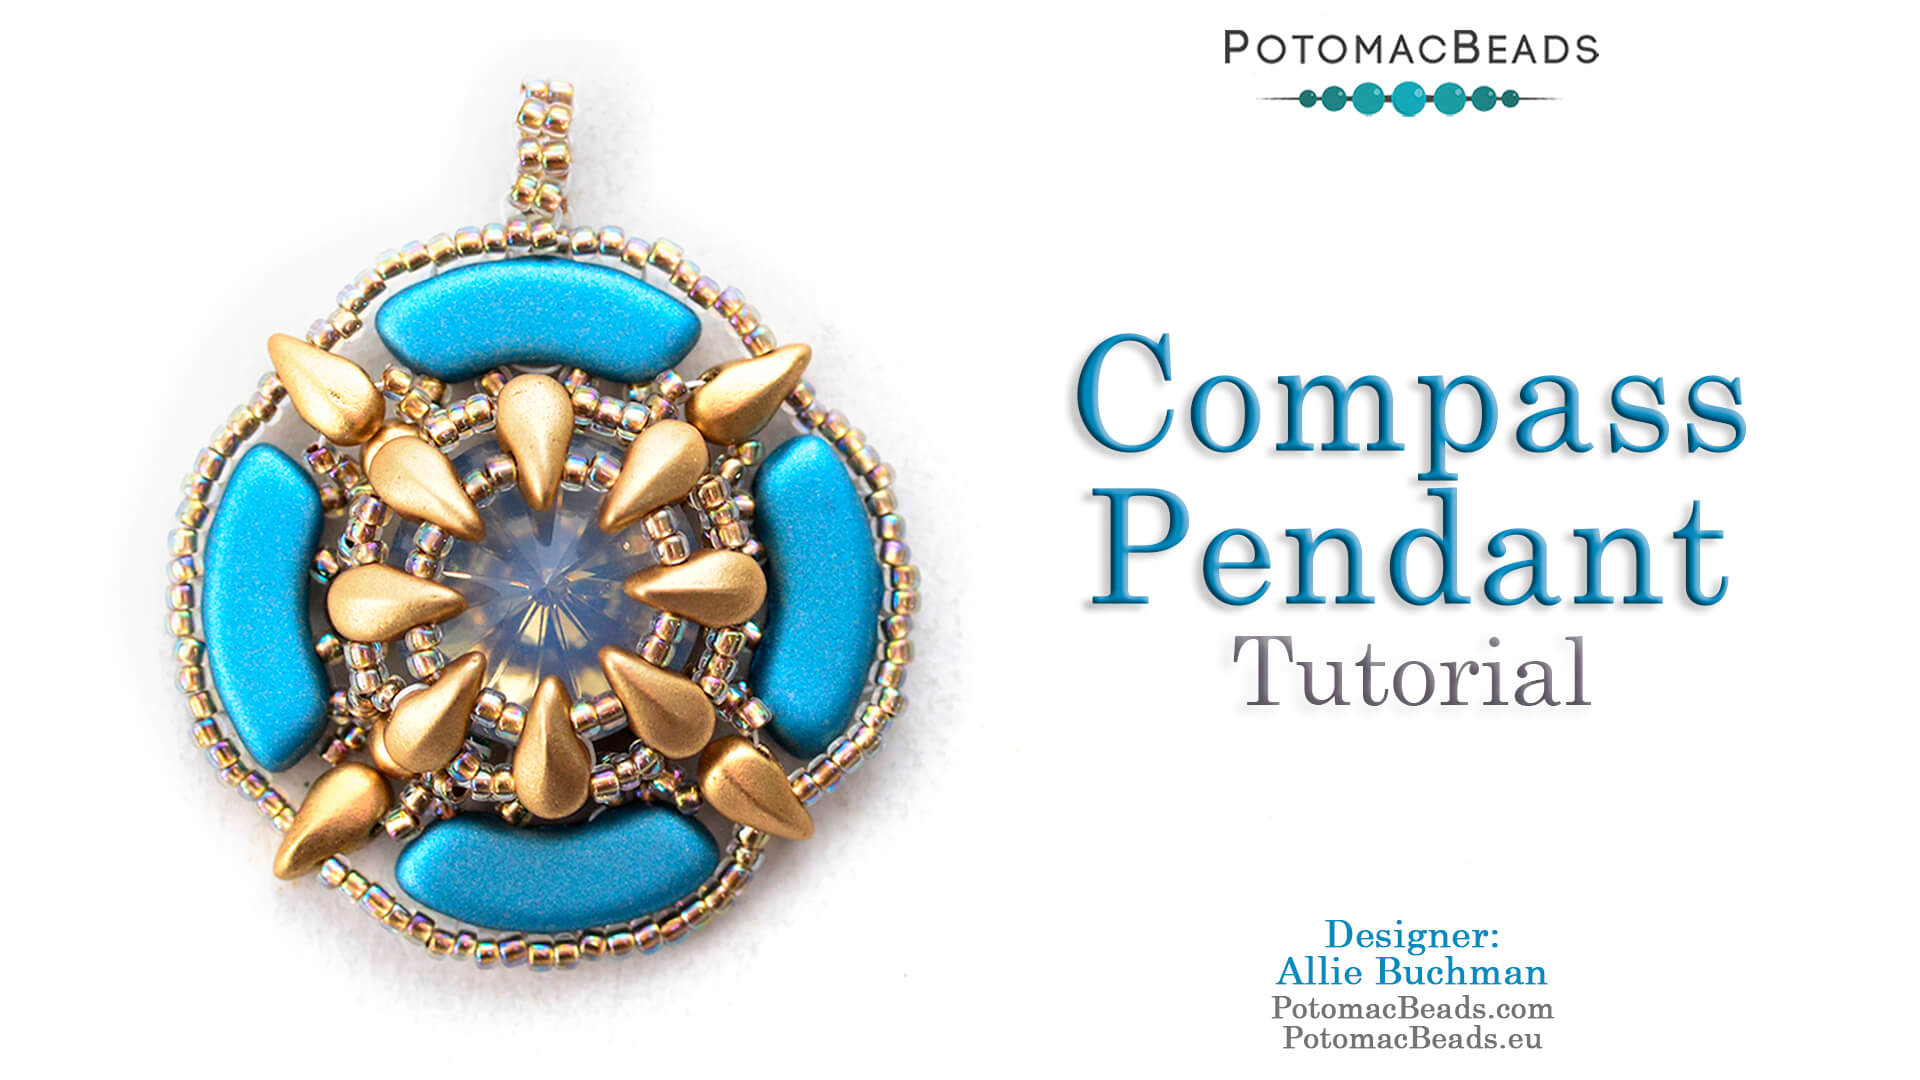 How to Bead / Videos Sorted by Beads / QuadBow & PieDuo Bead Videos / Compass Pendant Tutorial